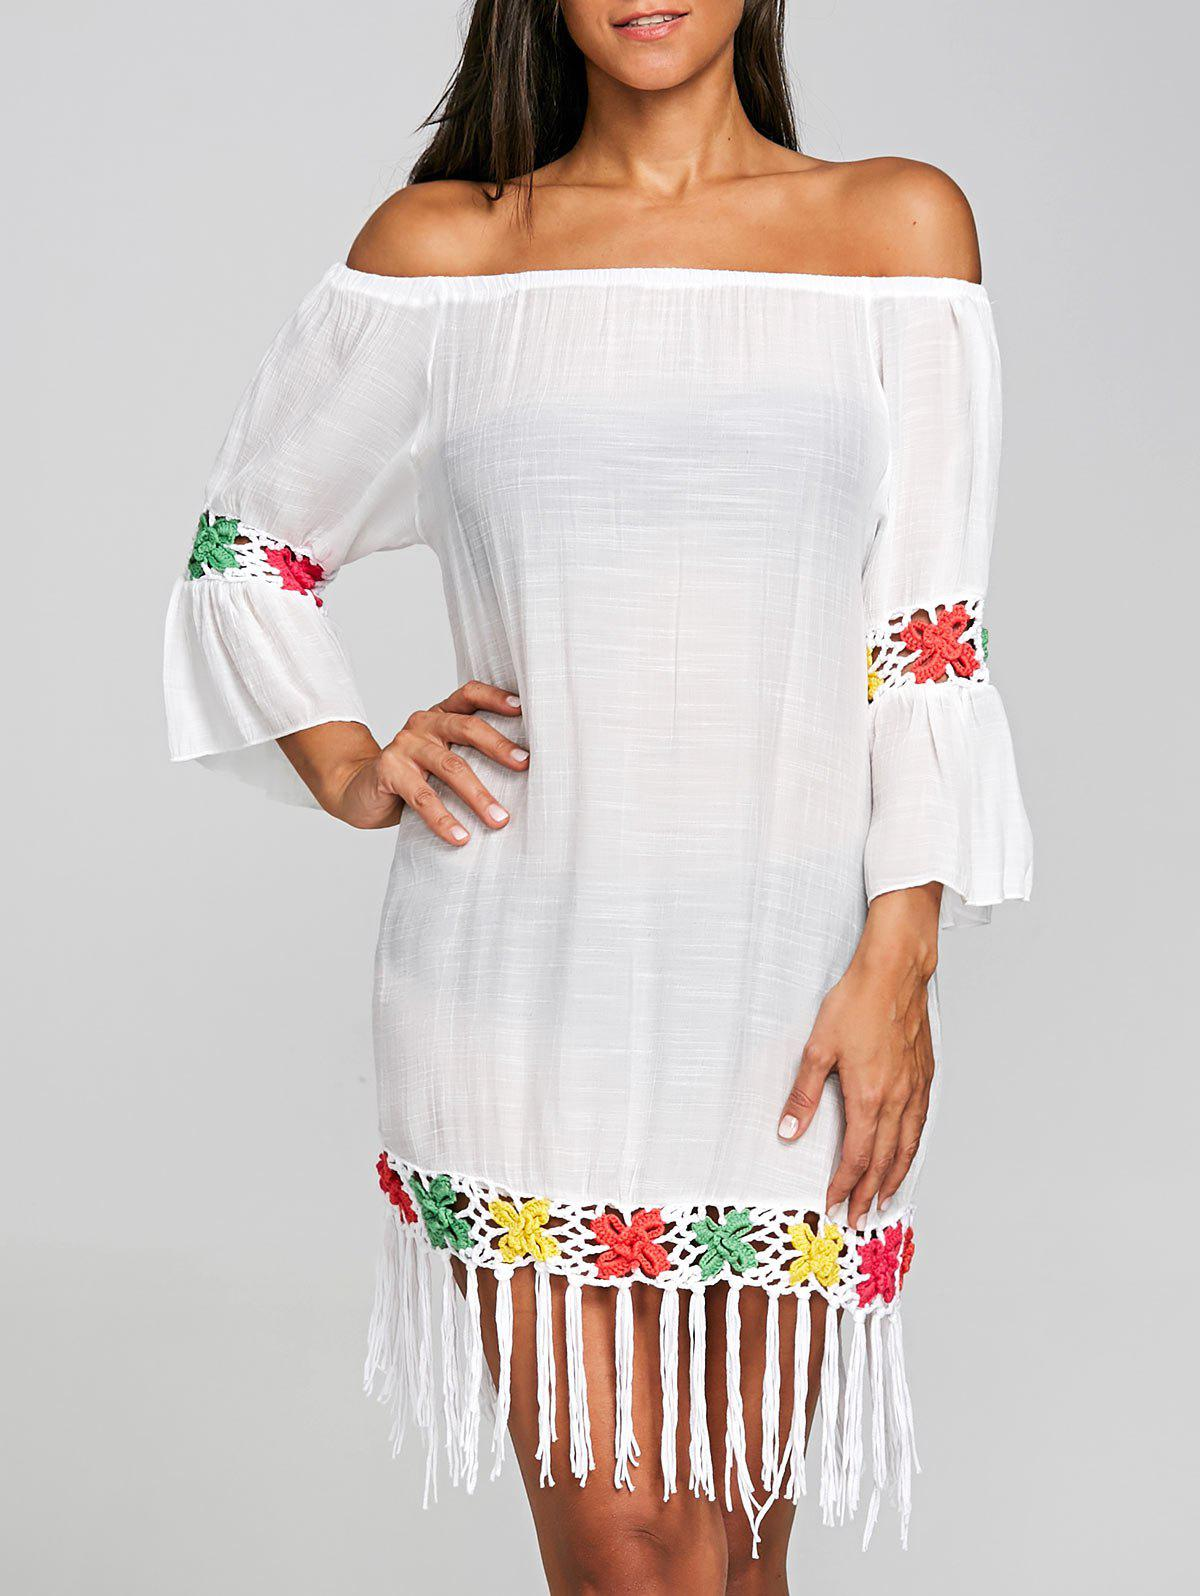 Flounce Crochet Insert Fringed Cover Up Dress - WHITE ONE SIZE